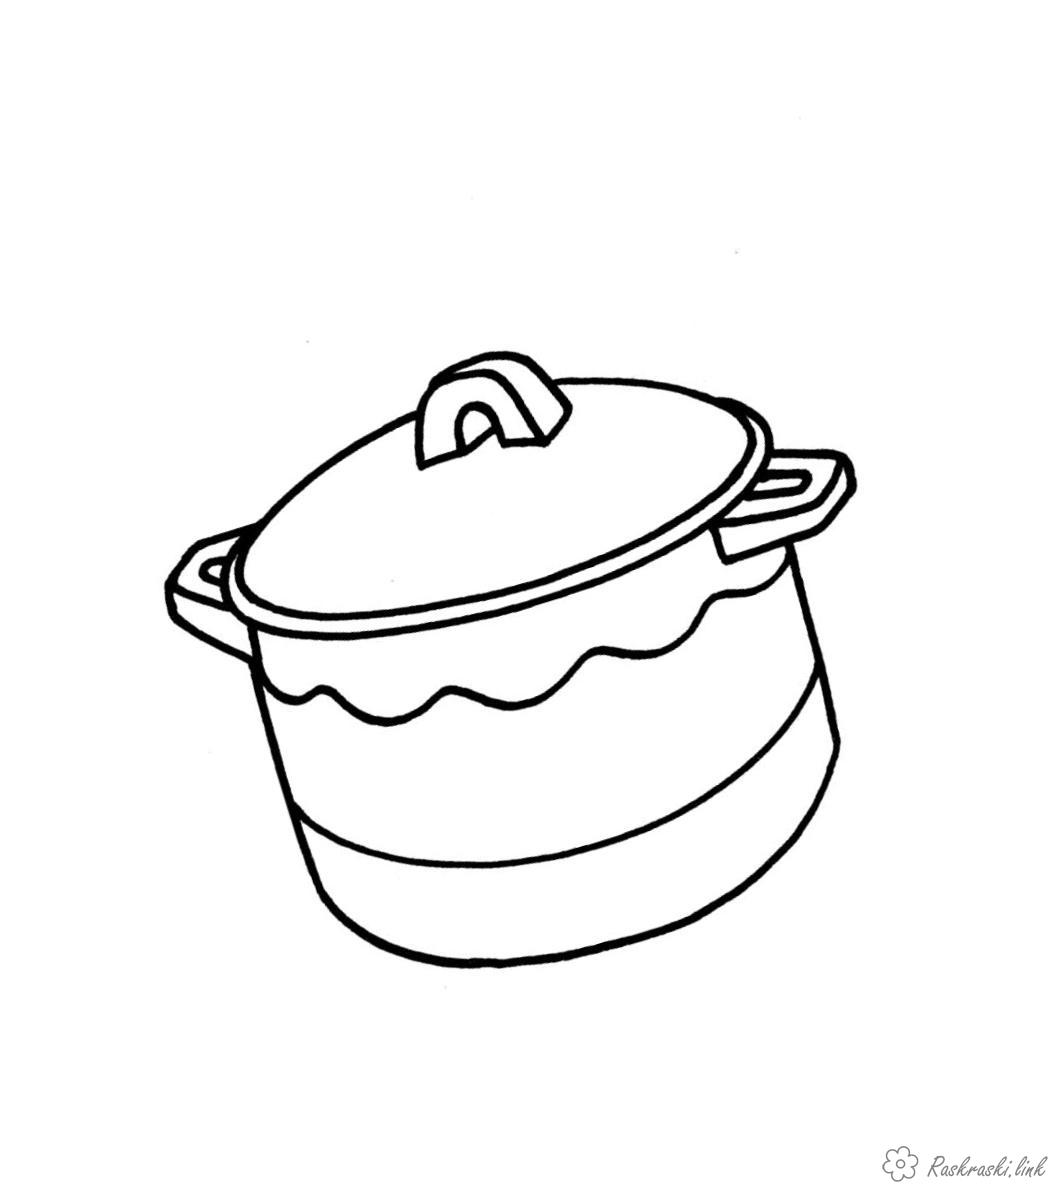 Coloring Simple coloring pages for kids Children coloring pages utensils, pots